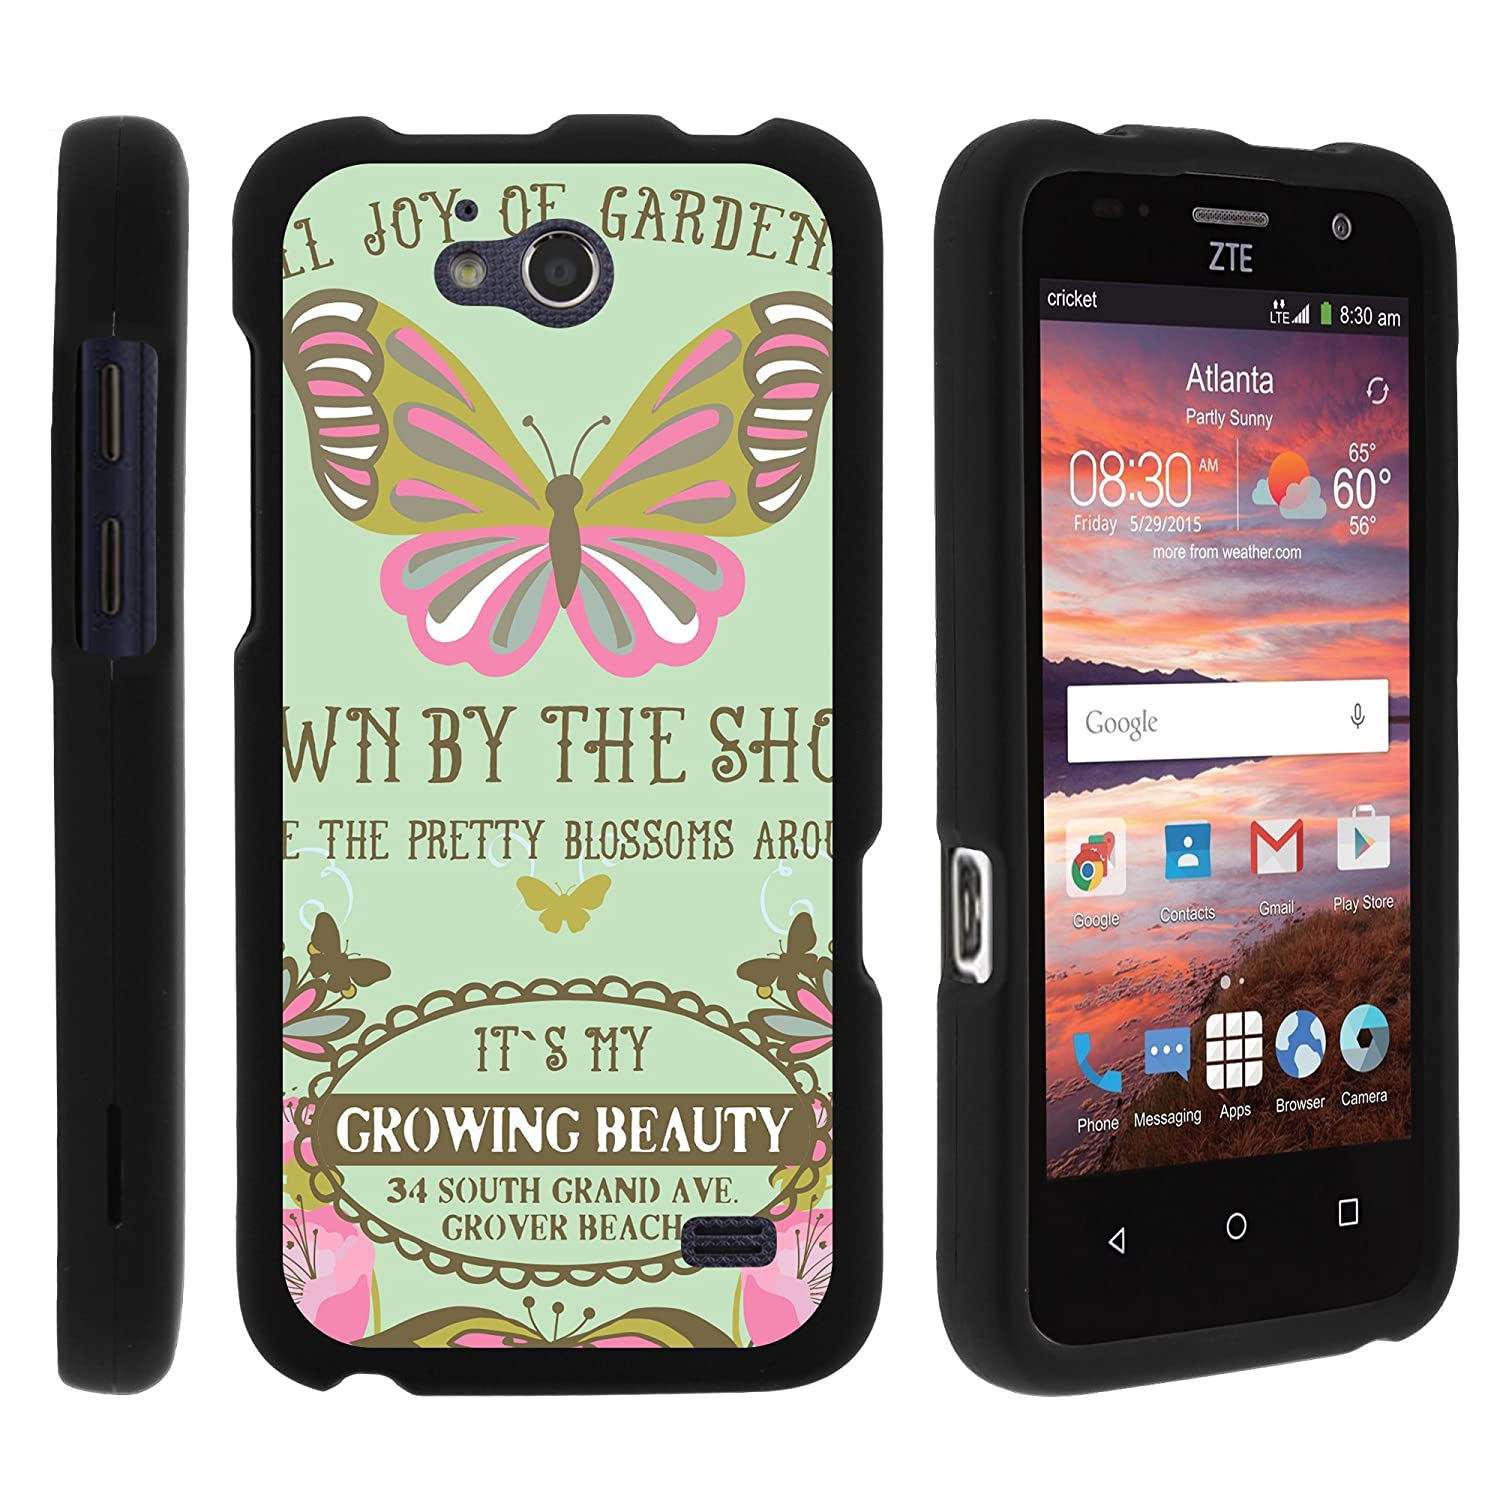 Amazon zte maven casenew customizable by buyers create amazon zte maven casenew customizable by buyers create your own phone case slim fitted hard shell protector cover for zte maven z812 zte overture biocorpaavc Choice Image